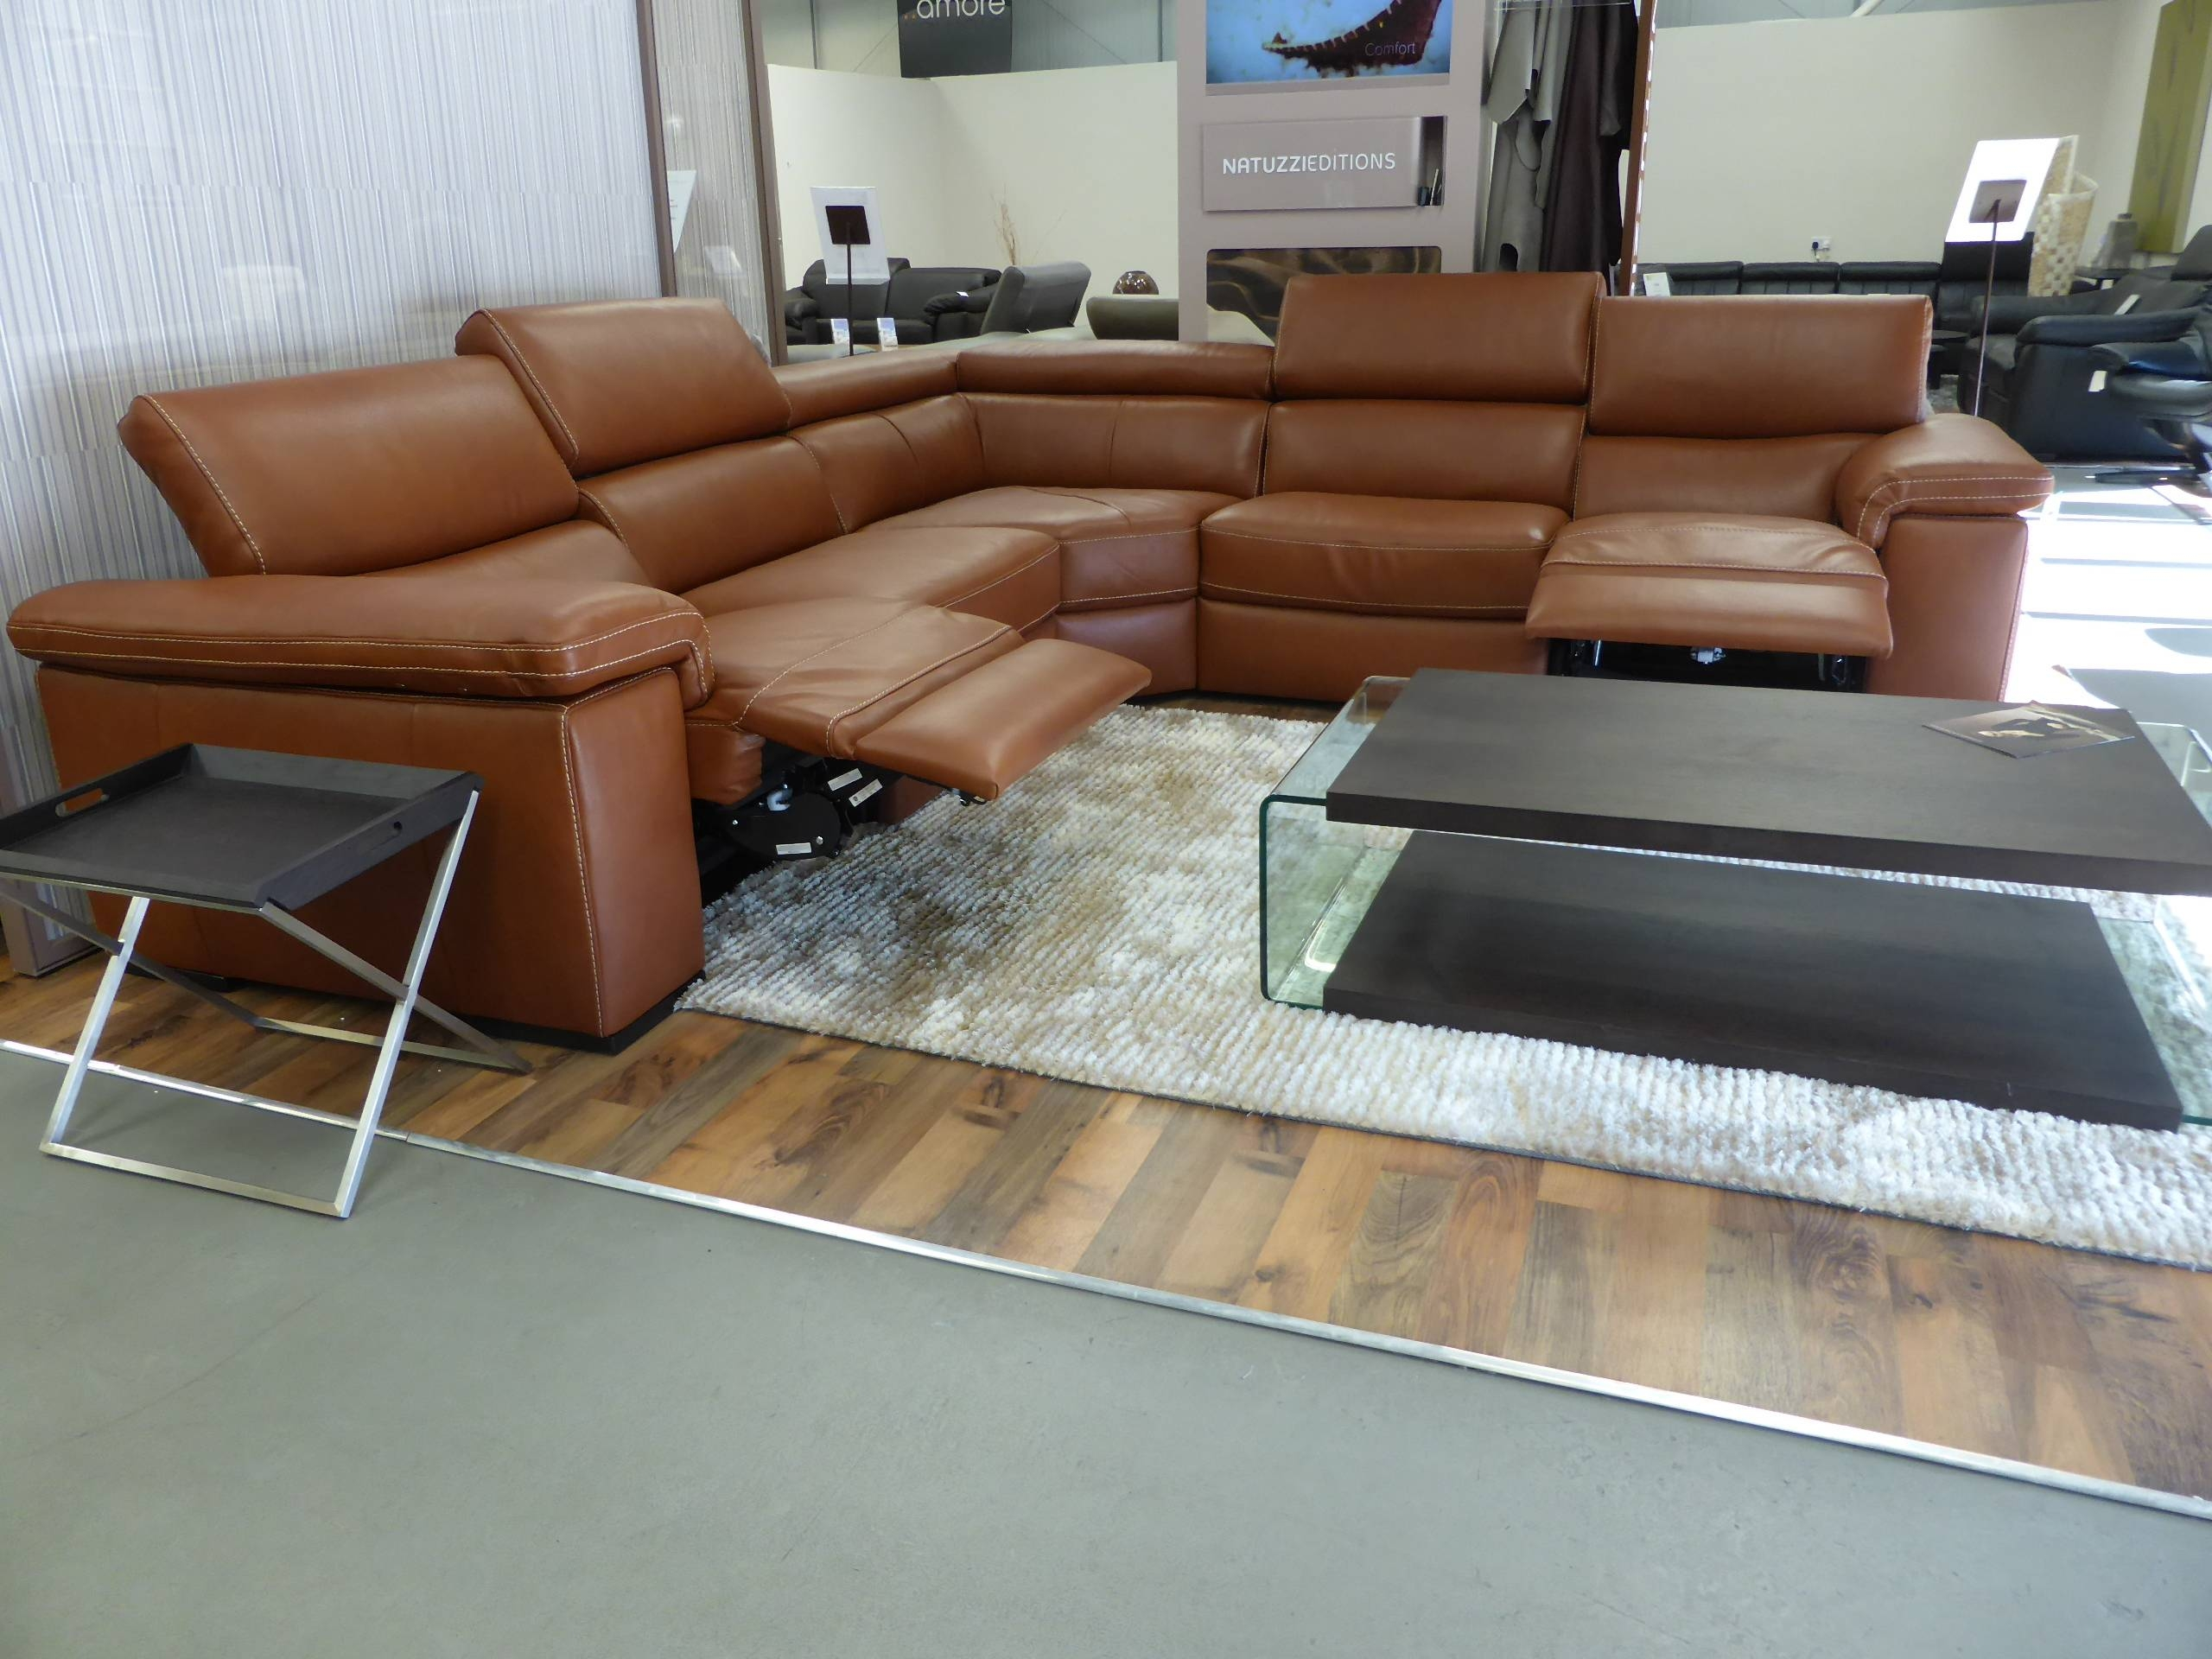 Furniture: Natuzzi Leather Couch | Macy's Leather Furniture inside Caramel Leather Sofas (Image 7 of 15)